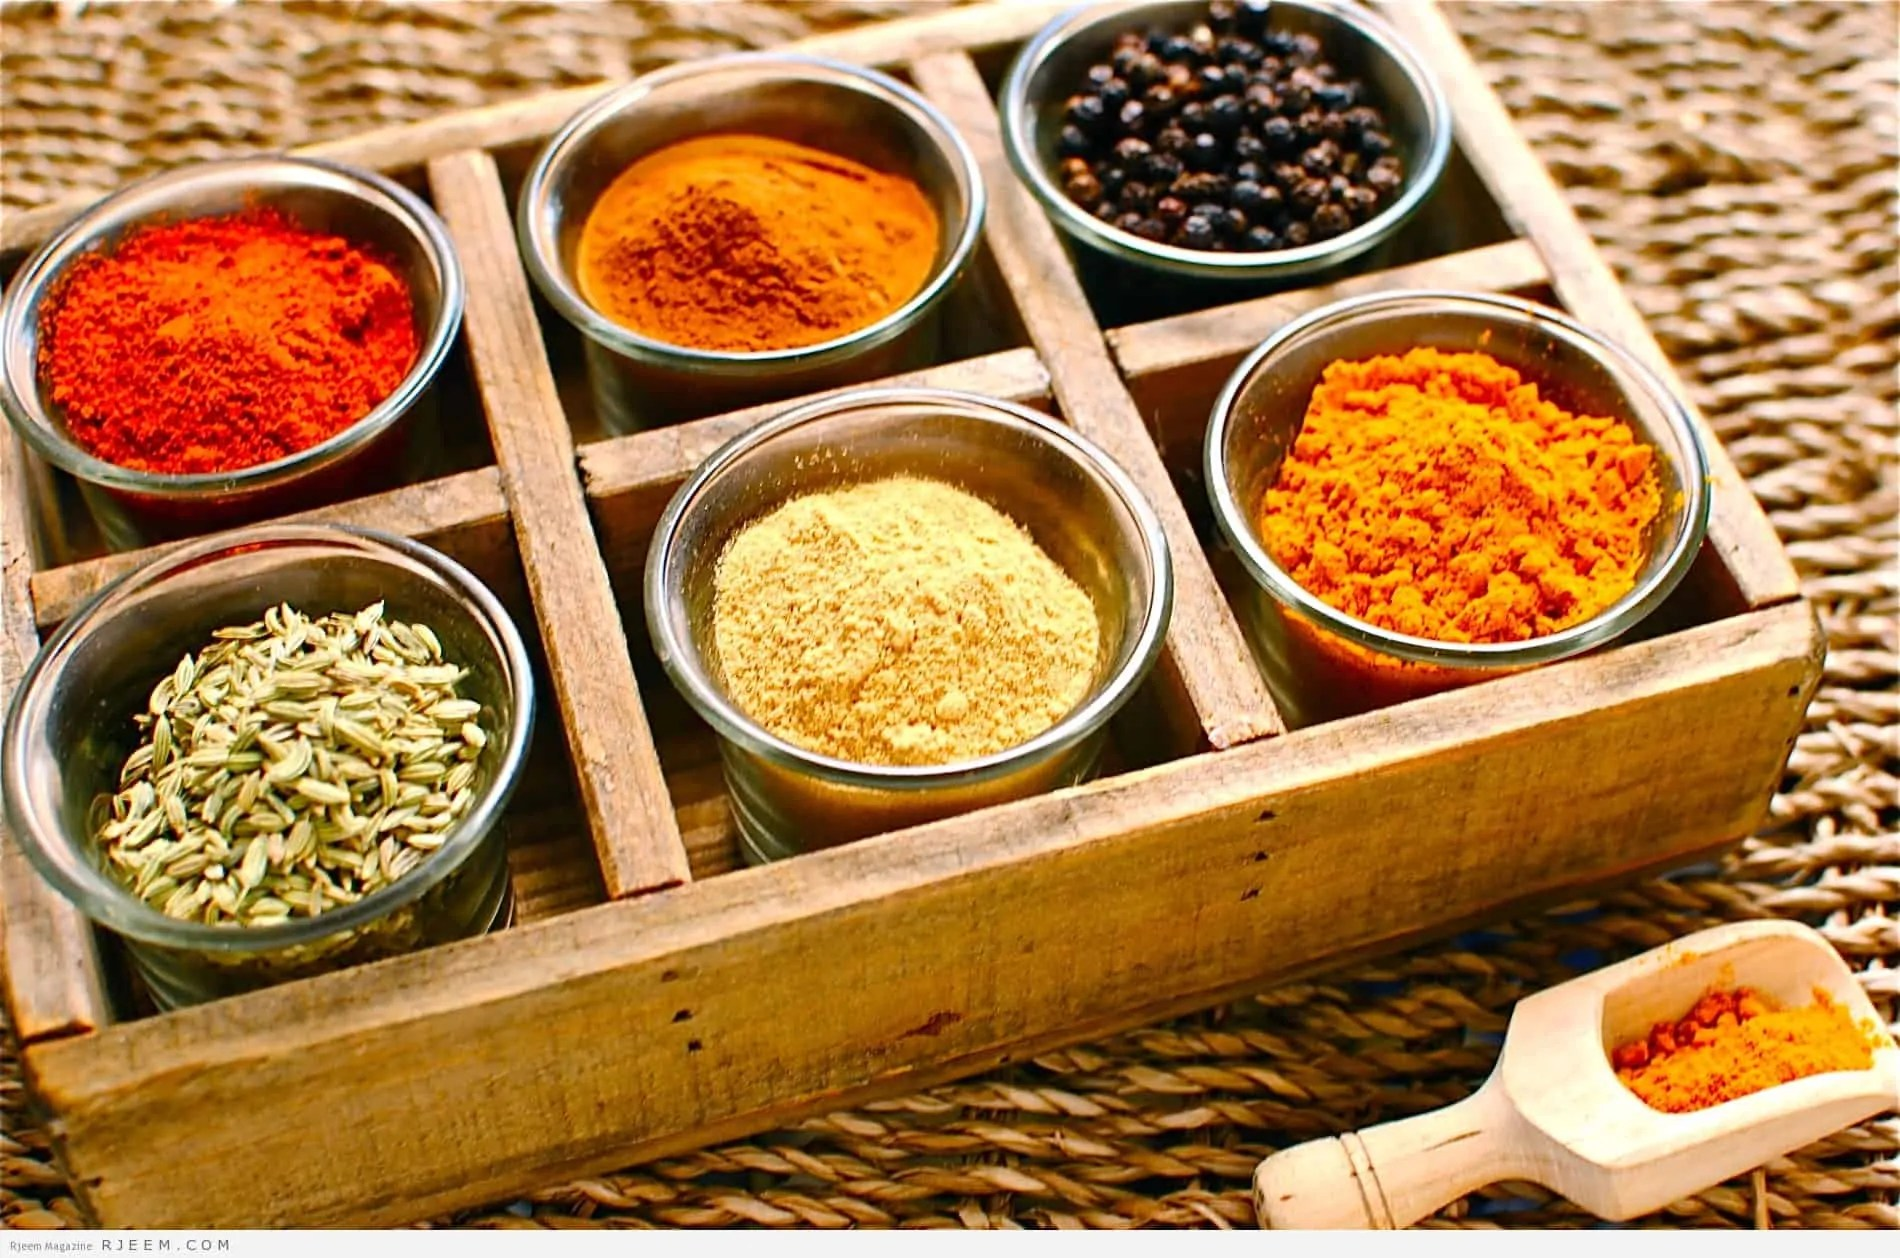 SPICE BRANDS OF PAKISTAN